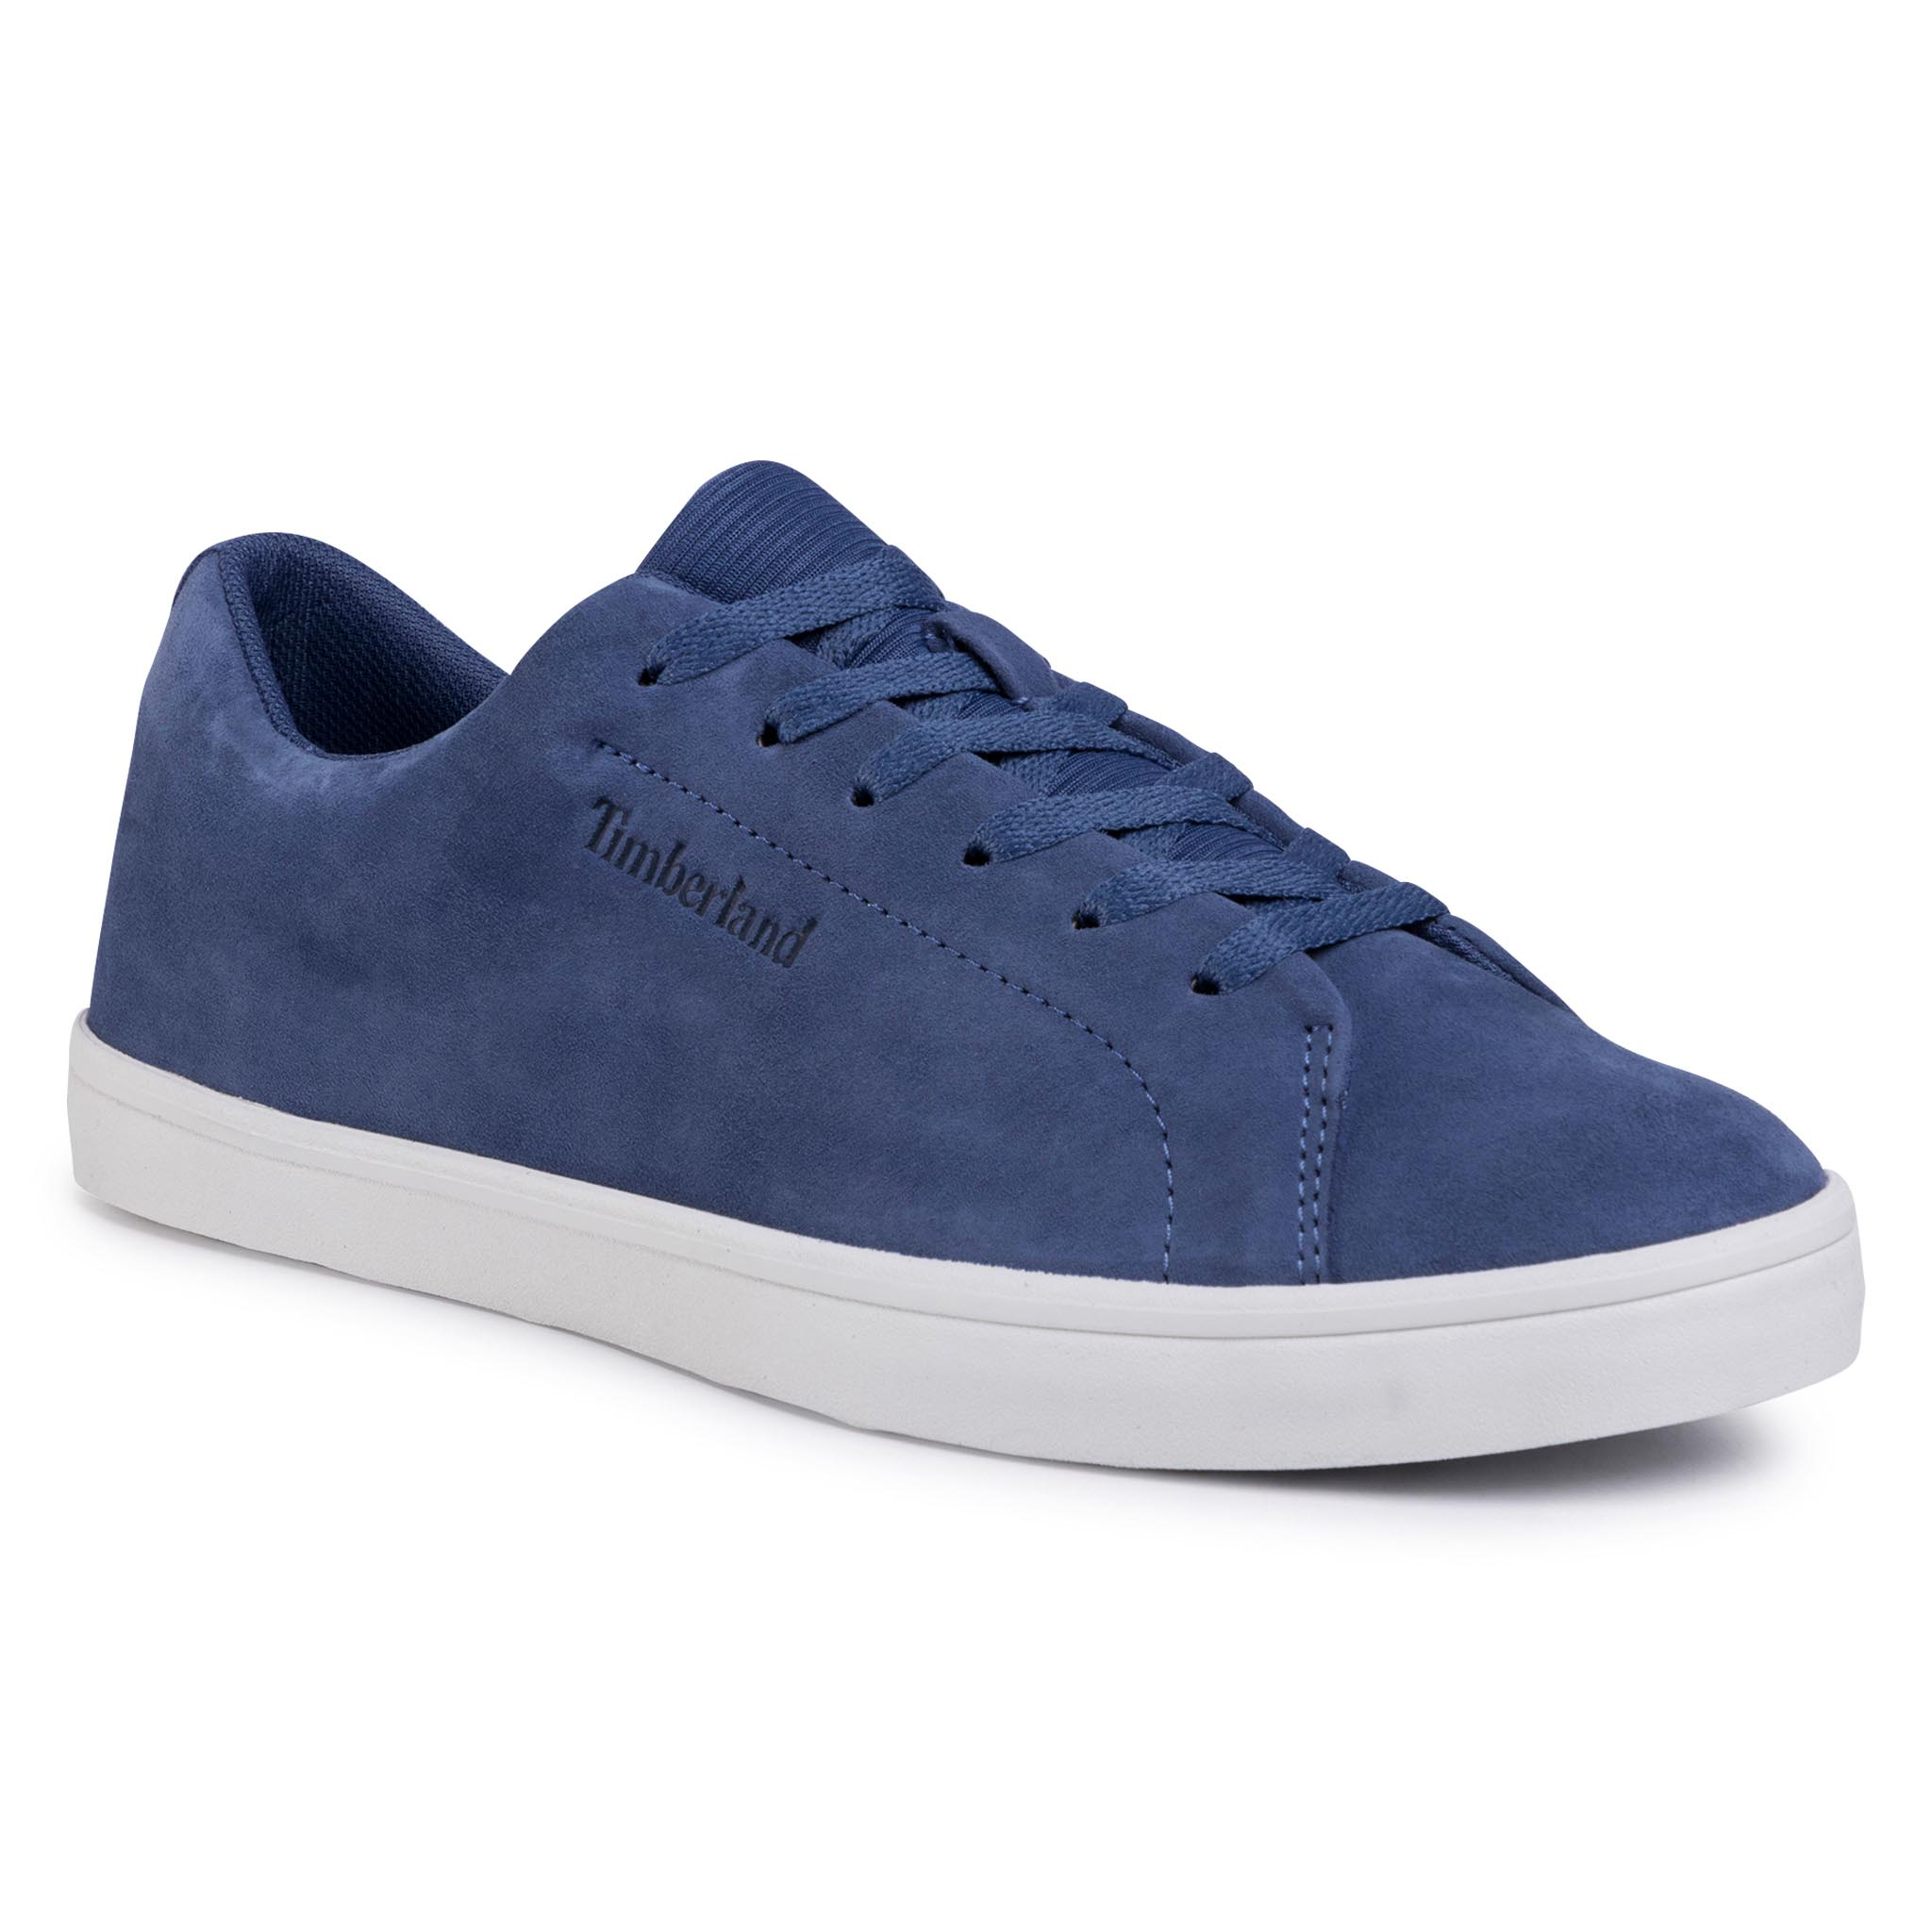 Teniși Timberland - Skape Park Oxford Medium Blue Suede imagine epantofi.ro 2021